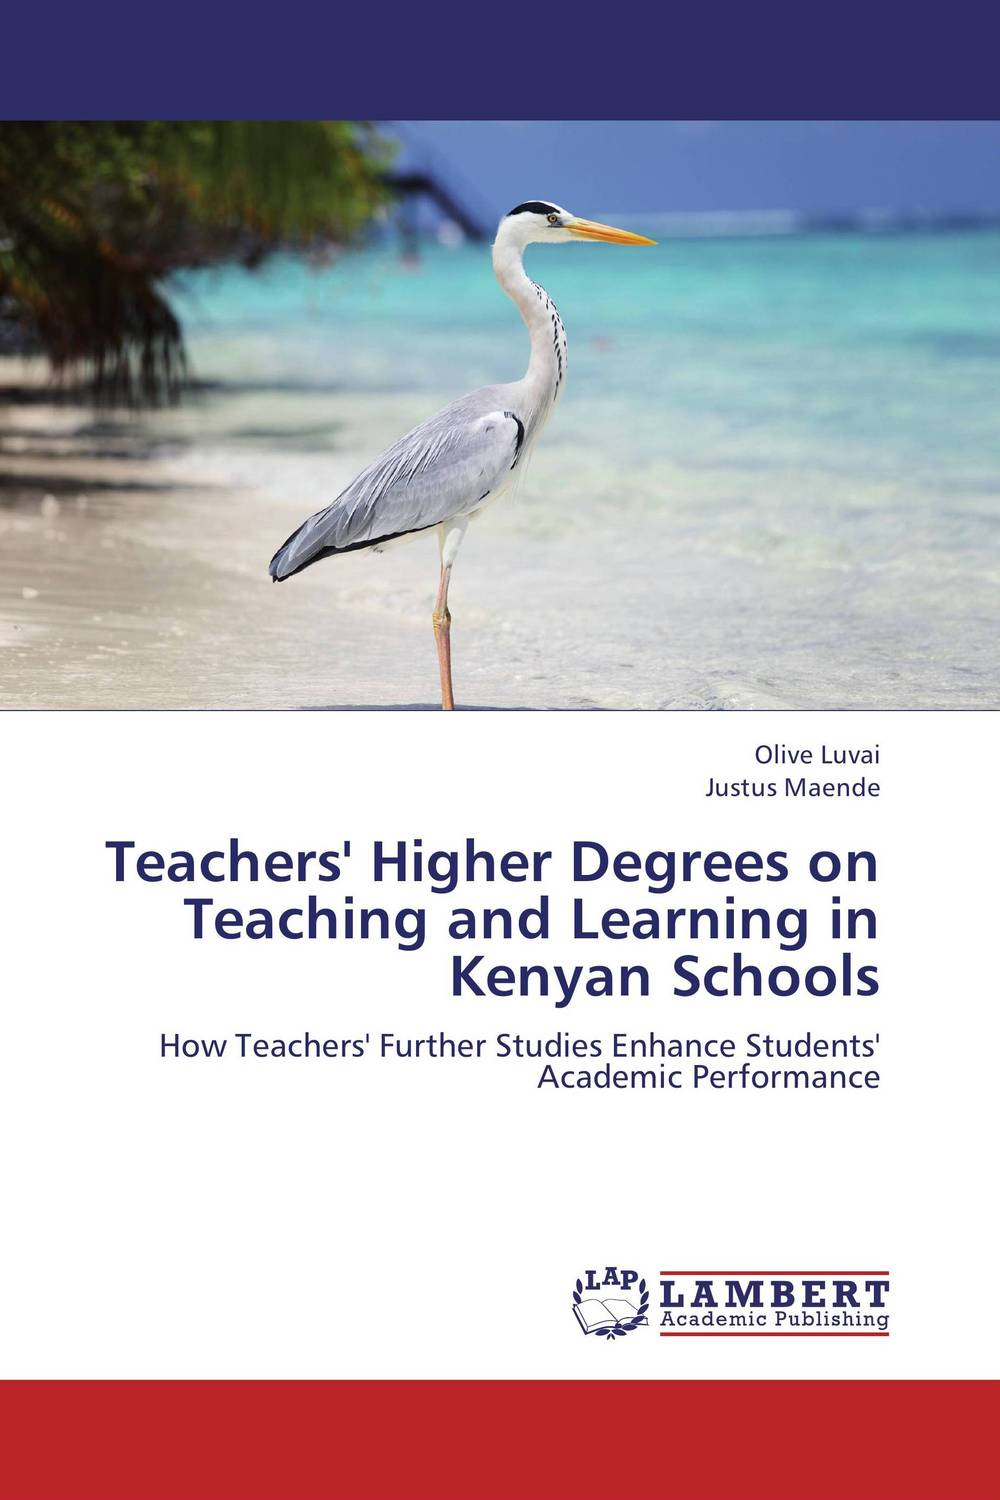 Teachers' Higher Degrees on Teaching and Learning in Kenyan Schools dimitrios stergiou good teaching in tourism higher education